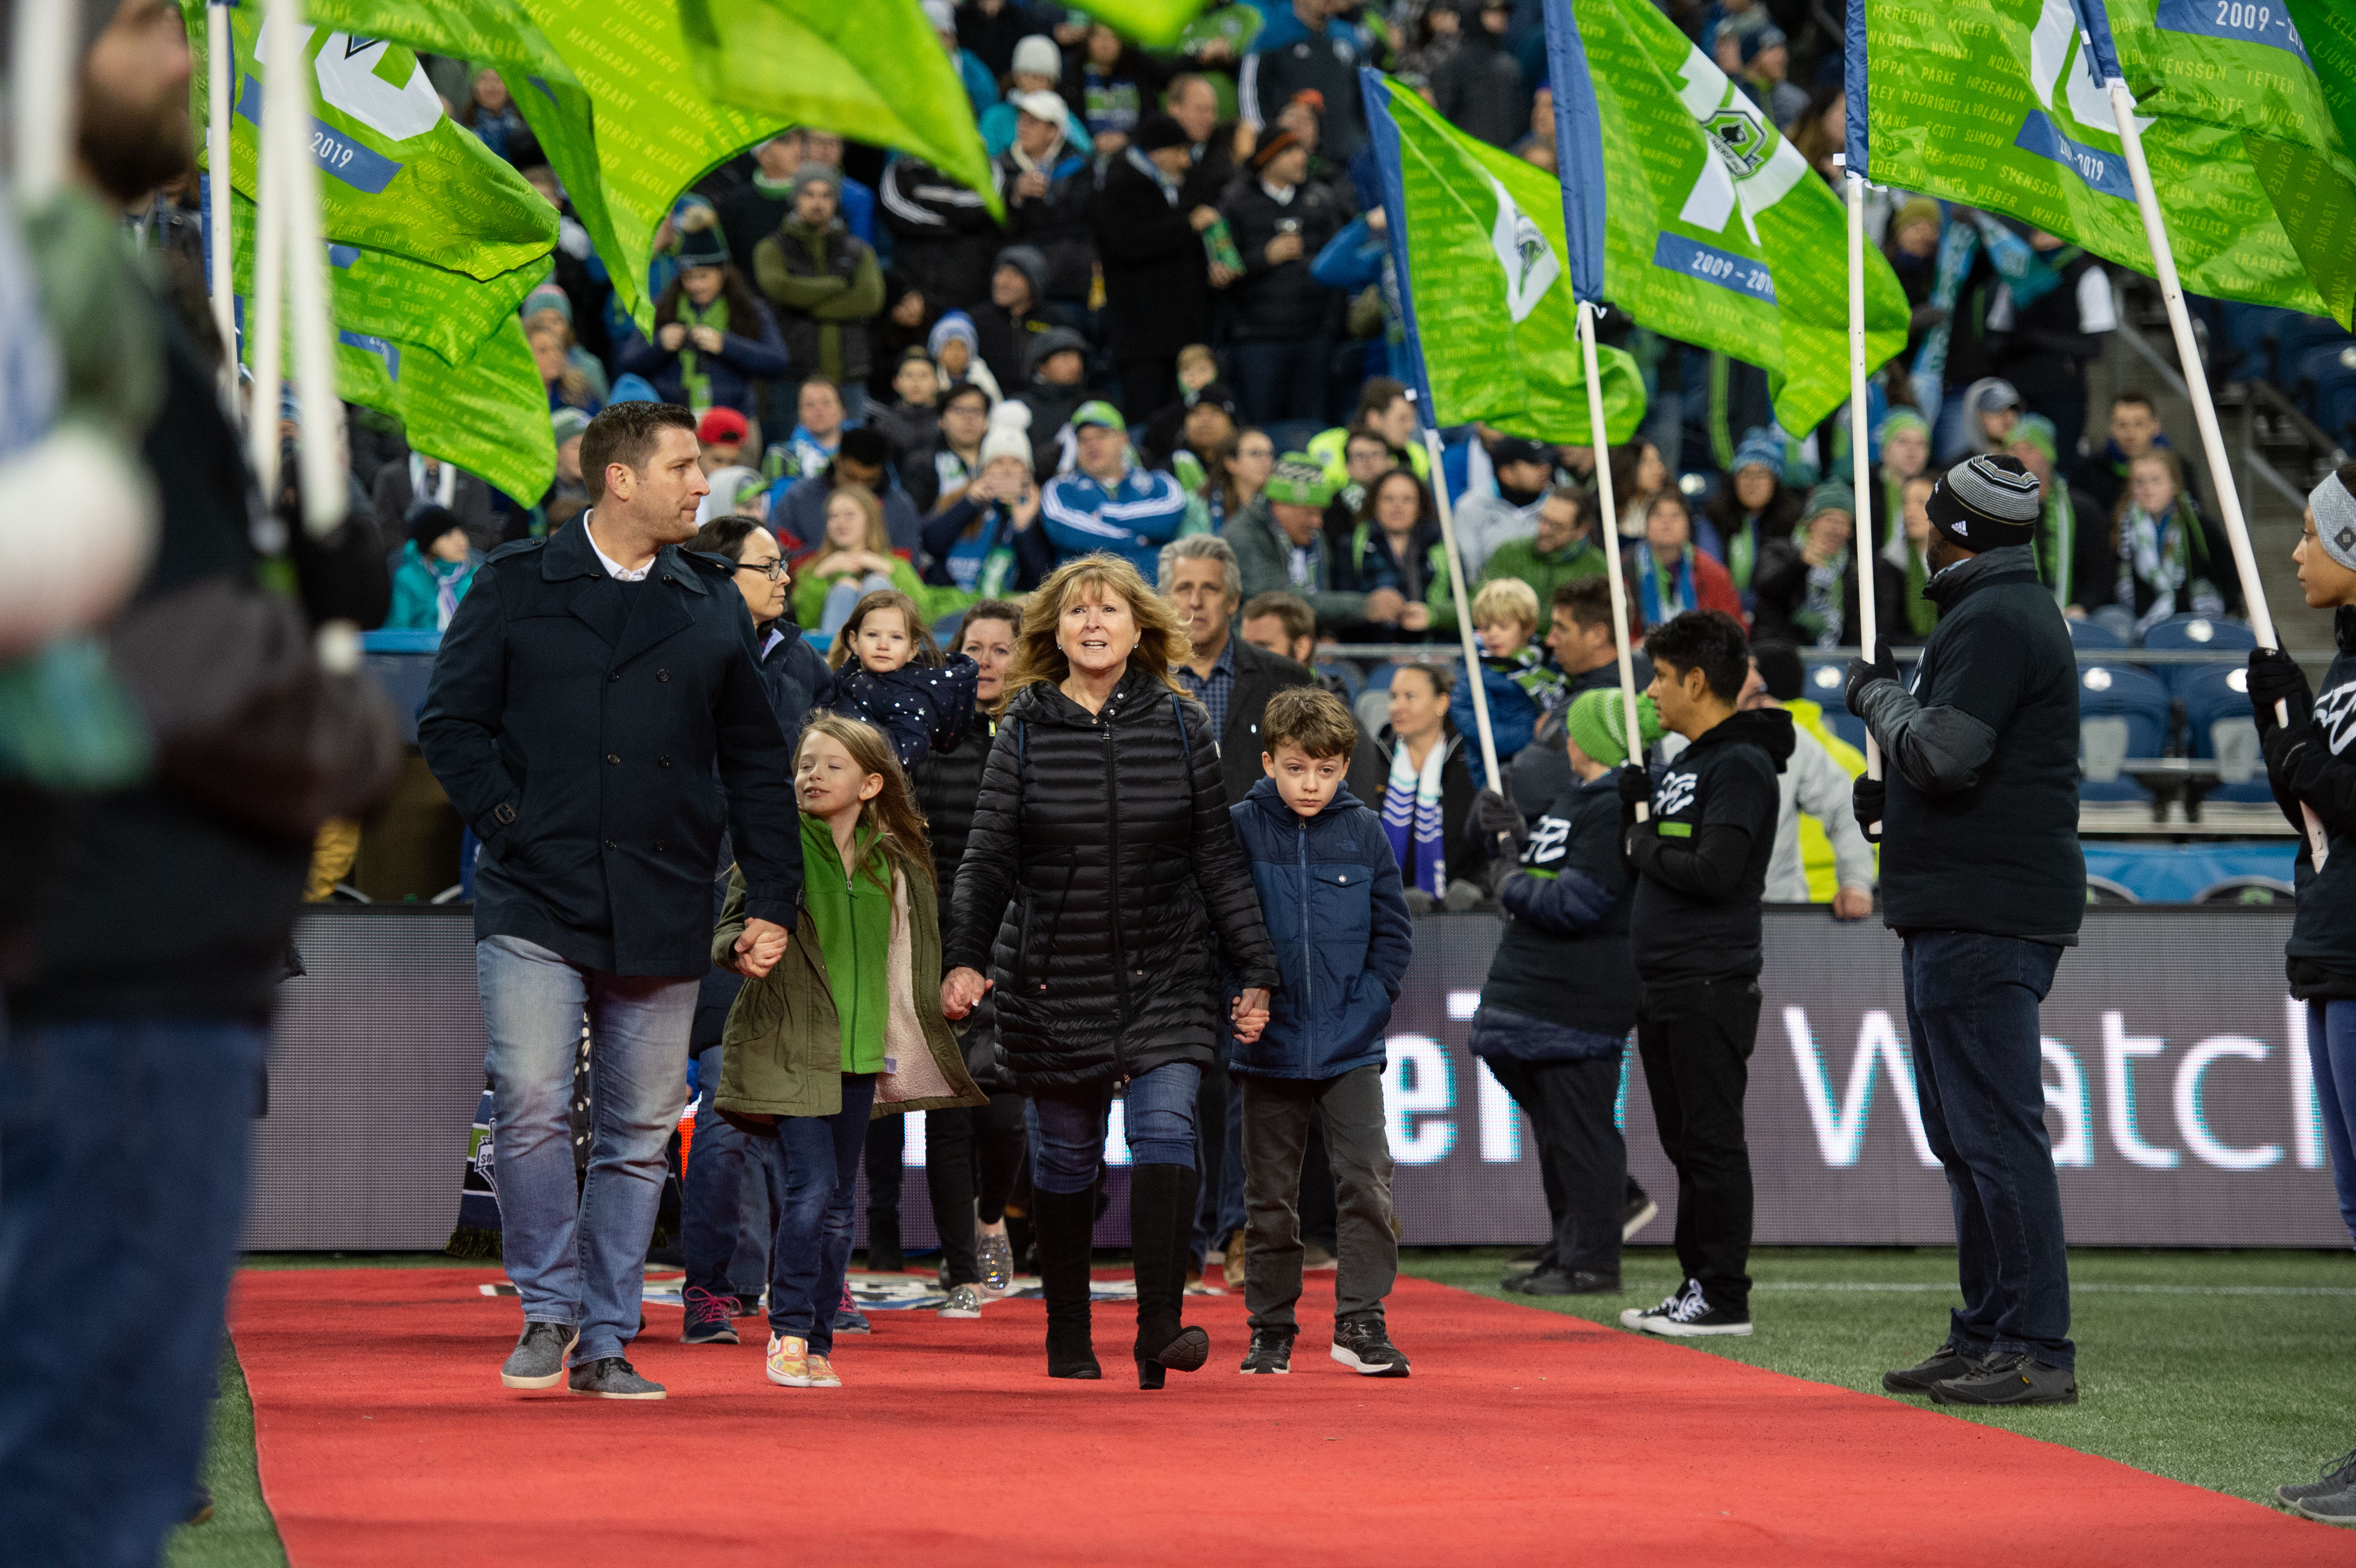 Sigi Schmid's surviving family marches through flags during the prematch ceremony.